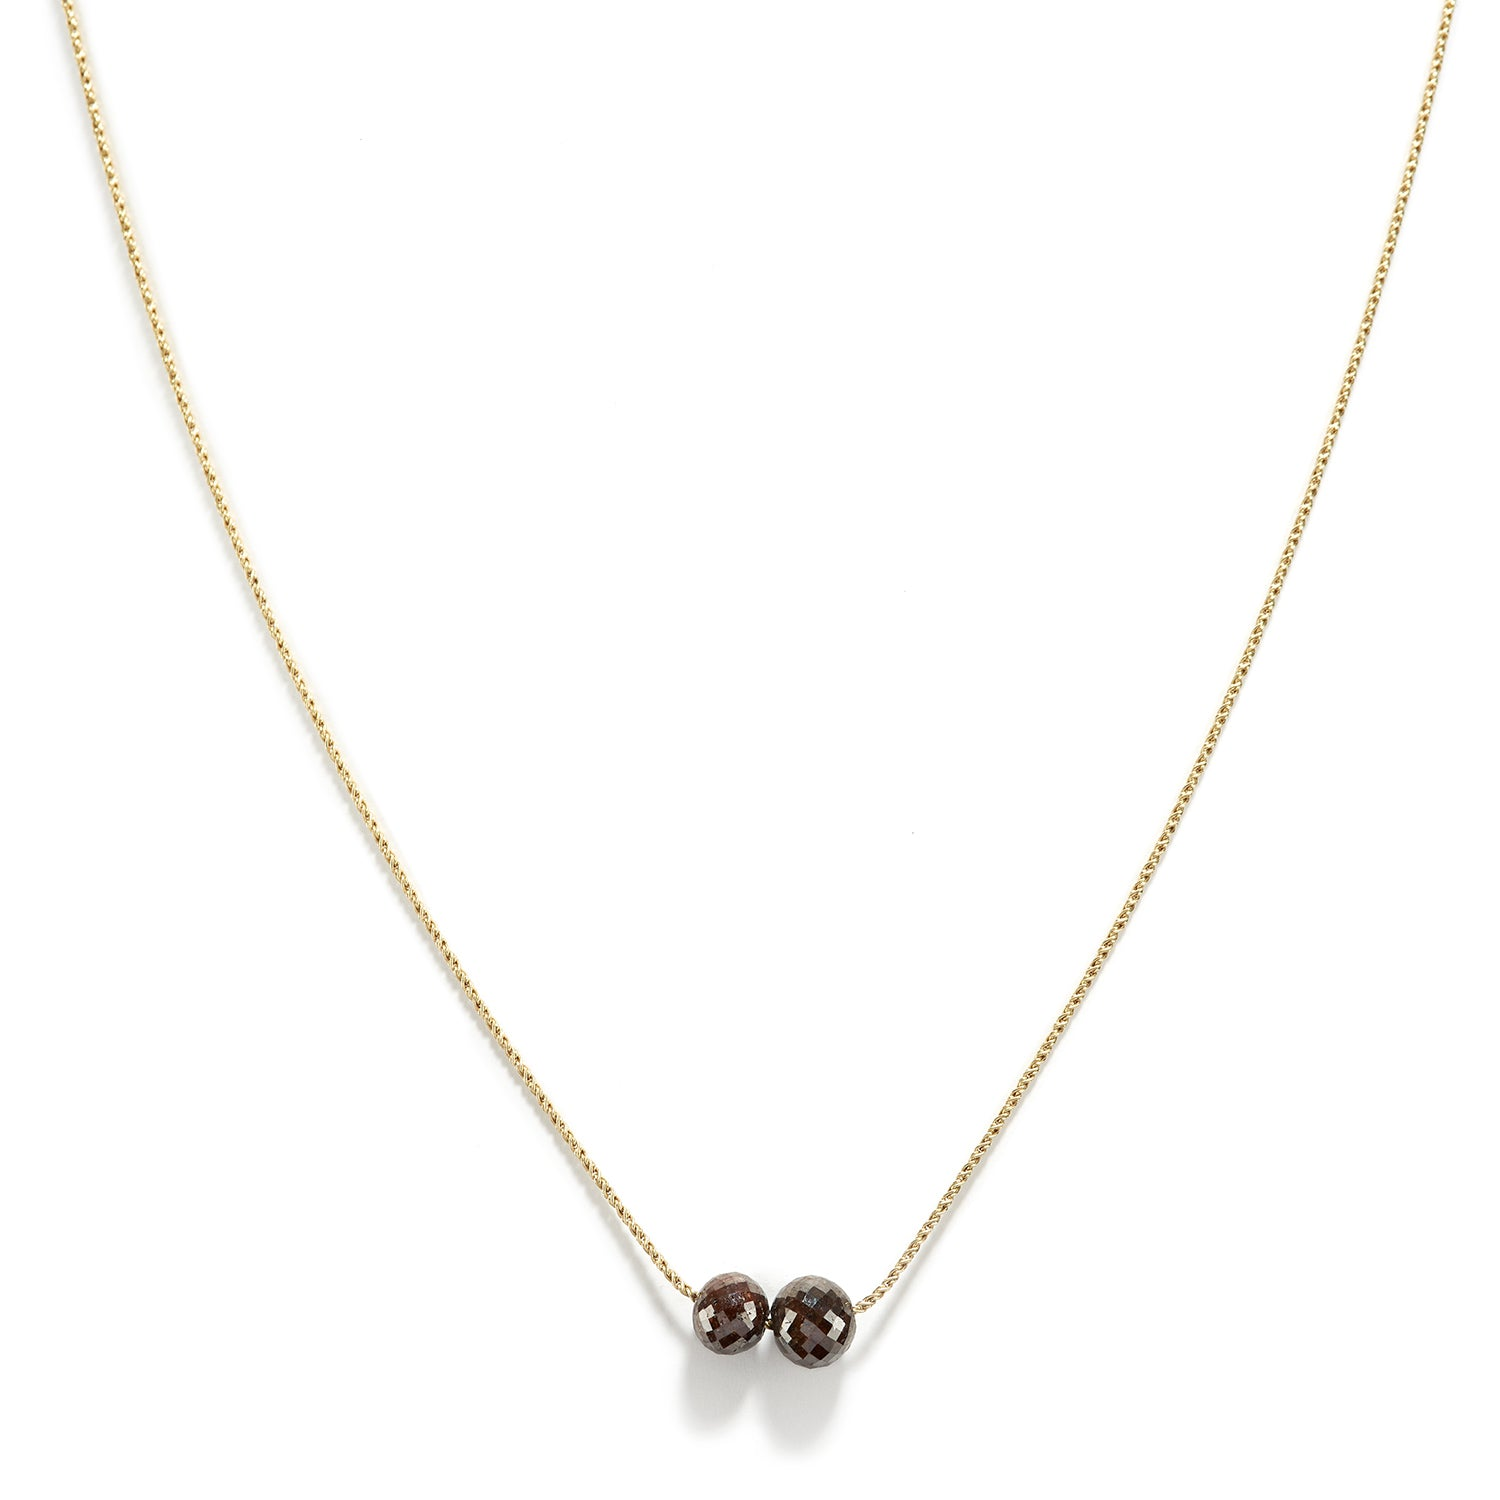 Rustic Brown Double Diamond Necklace